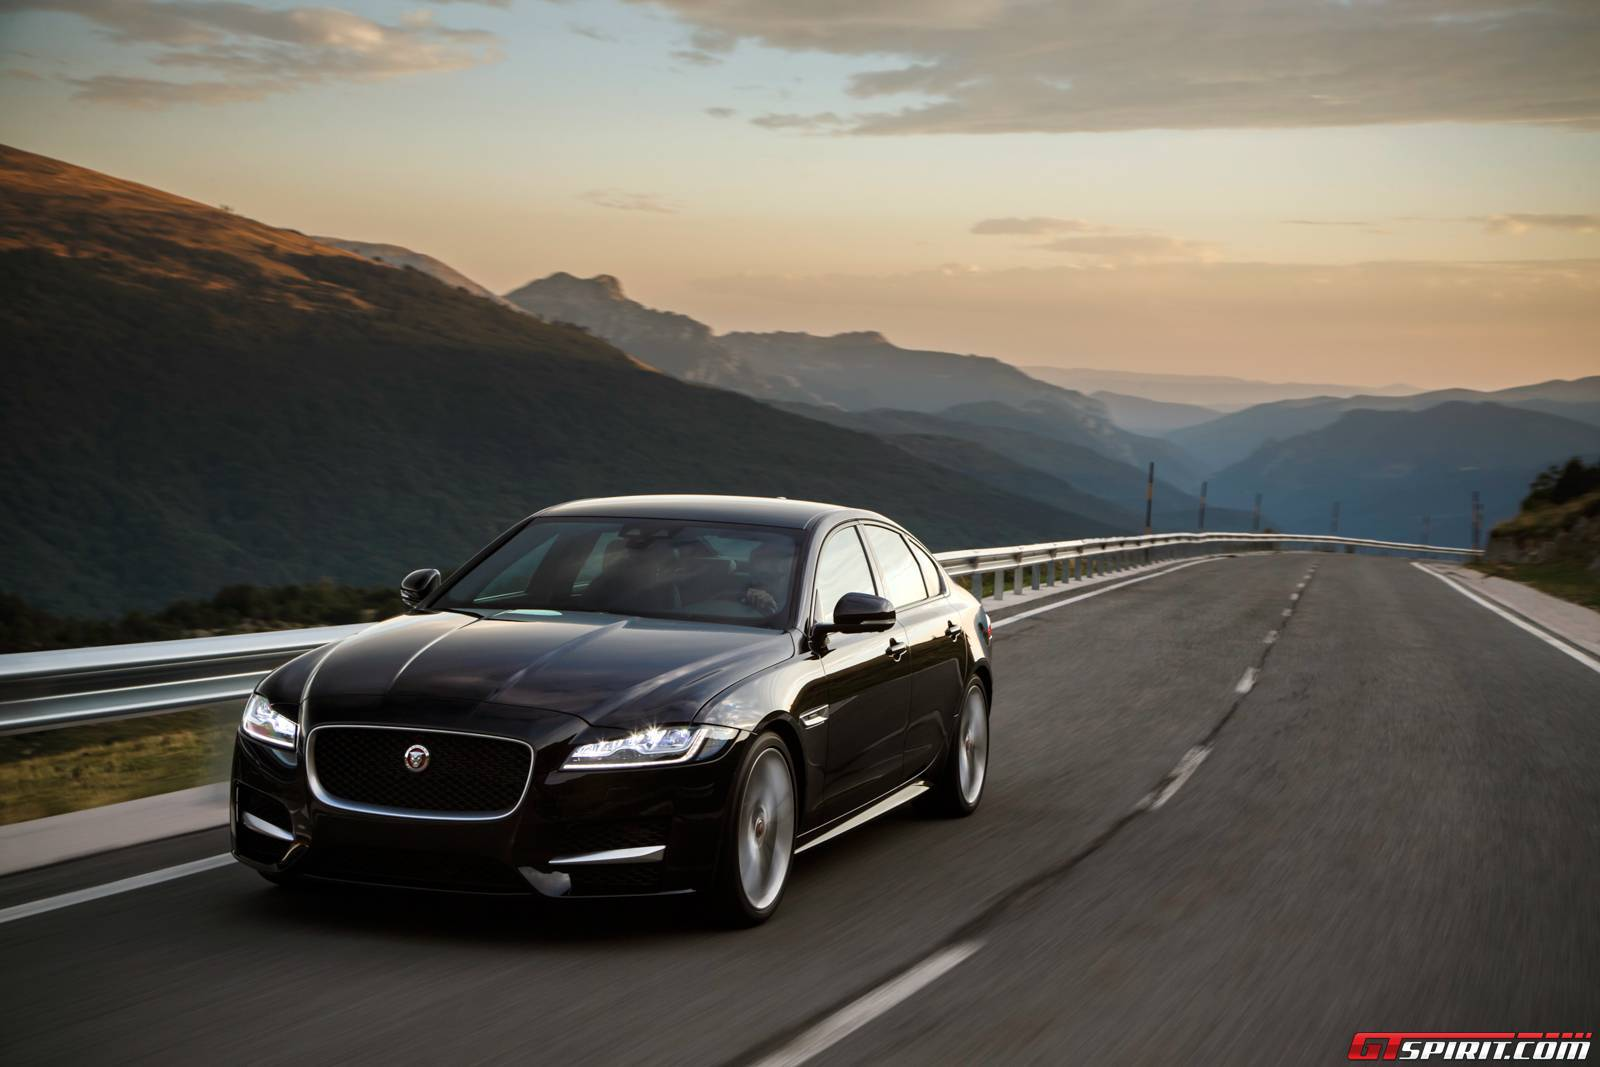 2016 jaguar xf and xf s review gtspirit. Black Bedroom Furniture Sets. Home Design Ideas